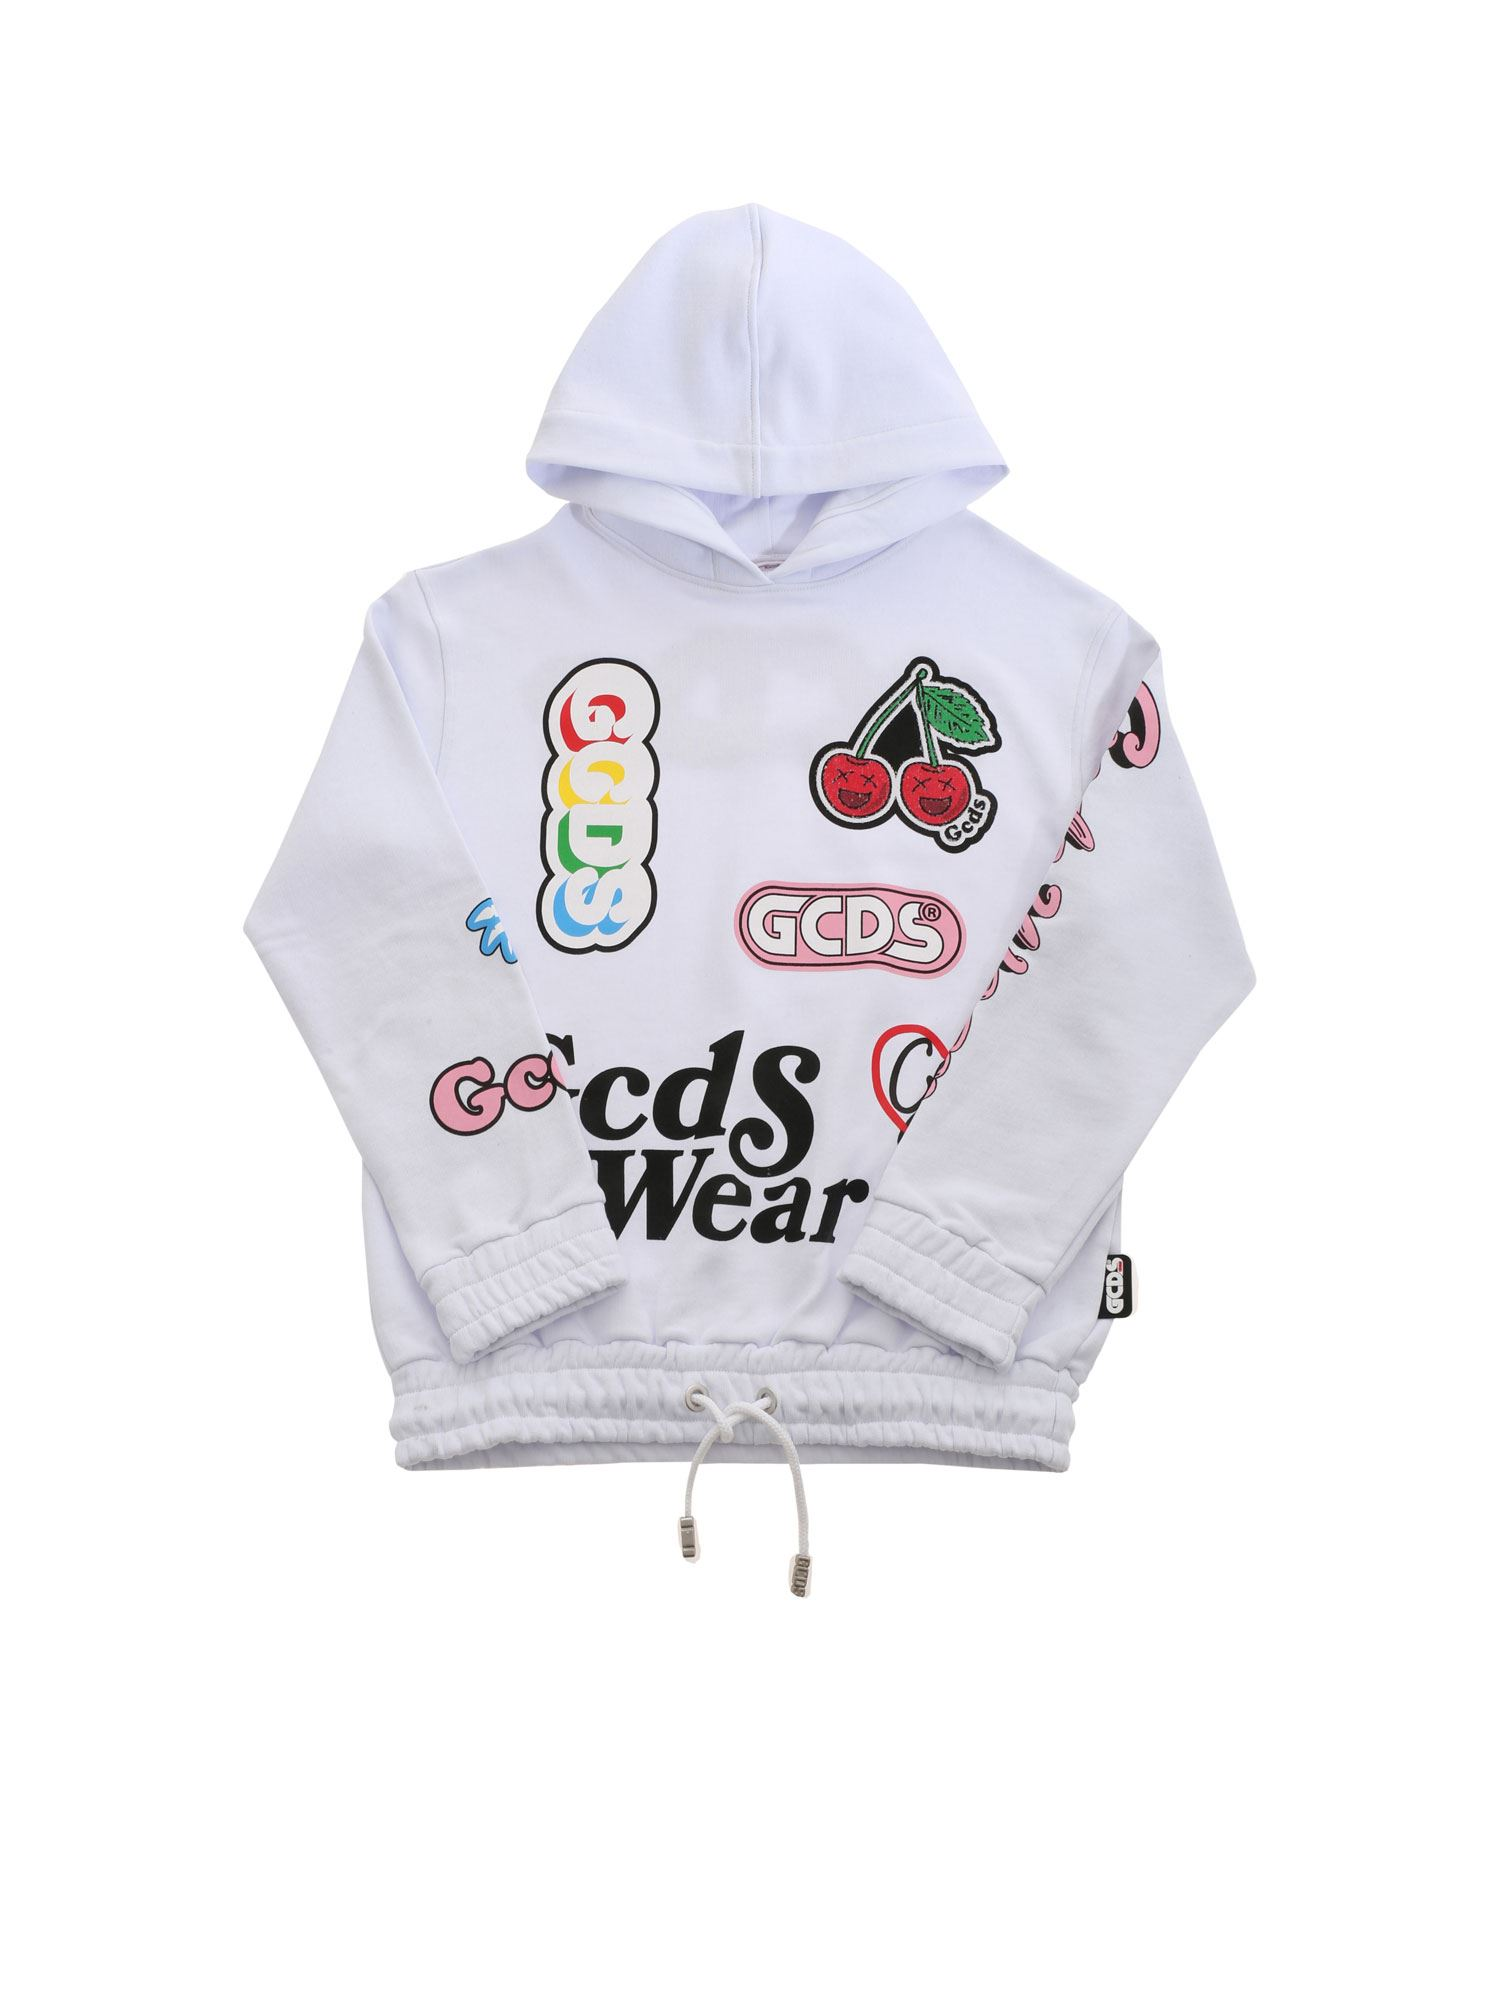 Gcds BOTTOM DRAWSTRING SWEATSHIRT IN WHITE